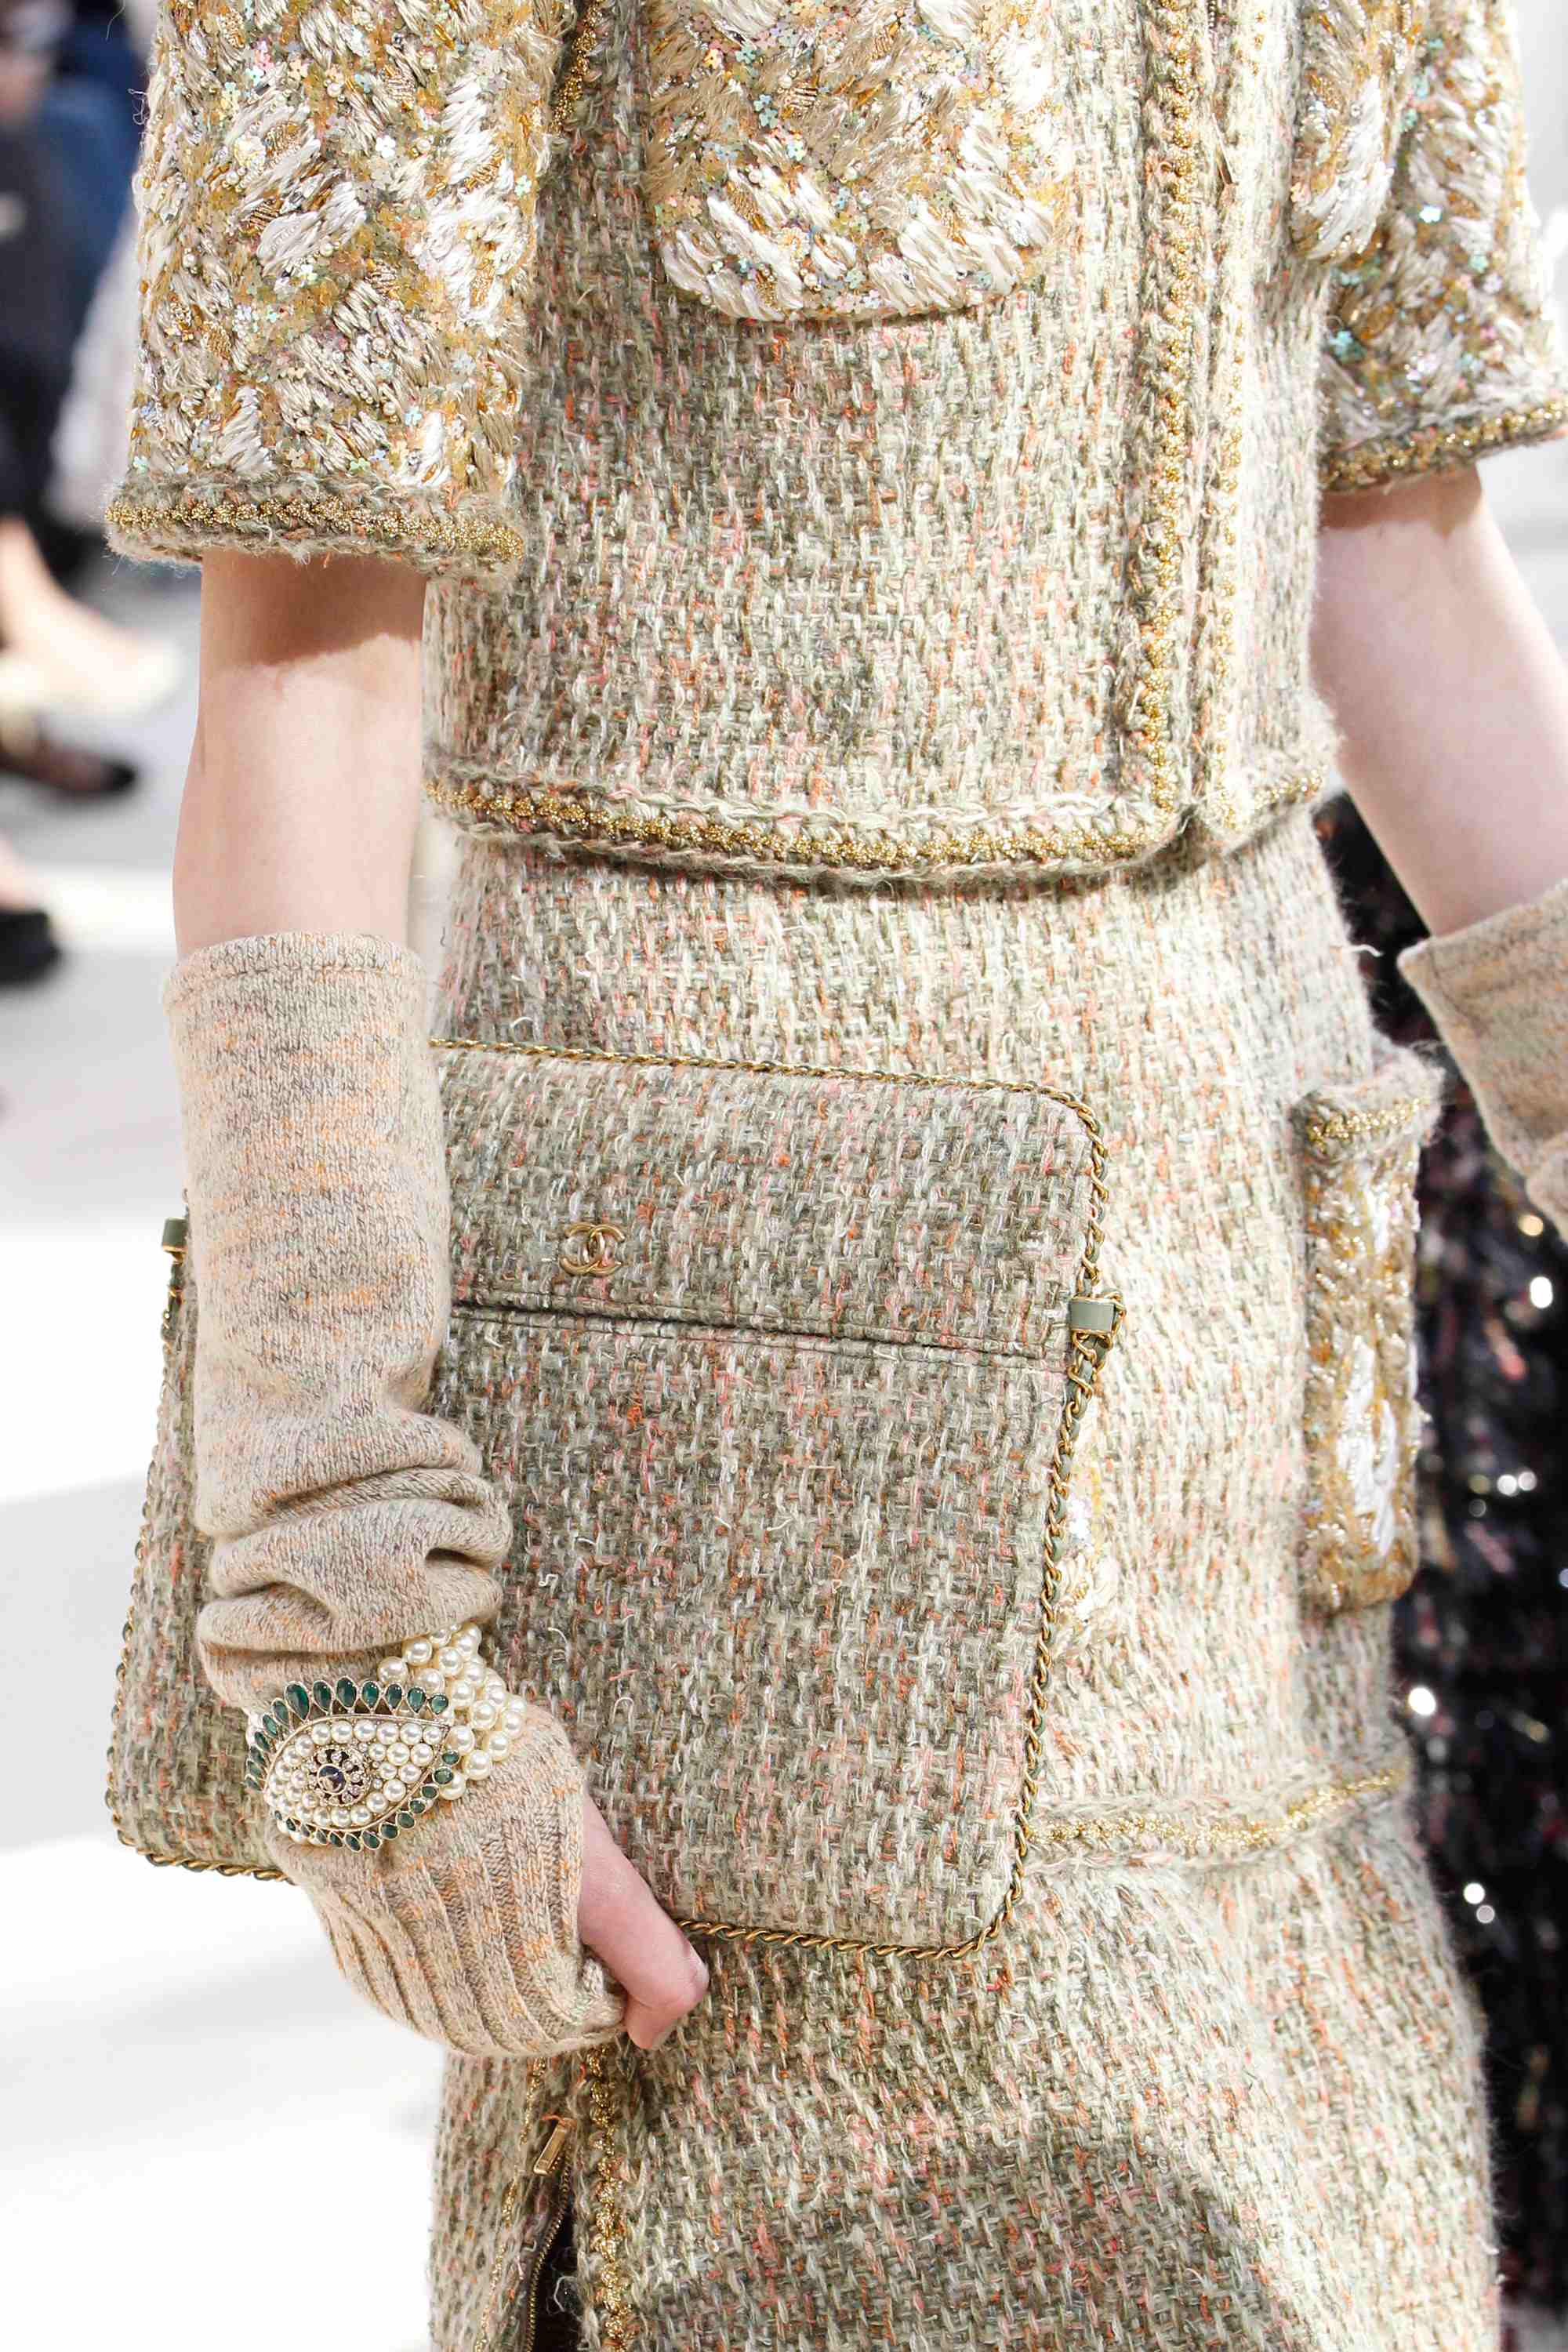 Chanel Fall  Winter 2016 Runway Bag Collection  U2013 Spotted